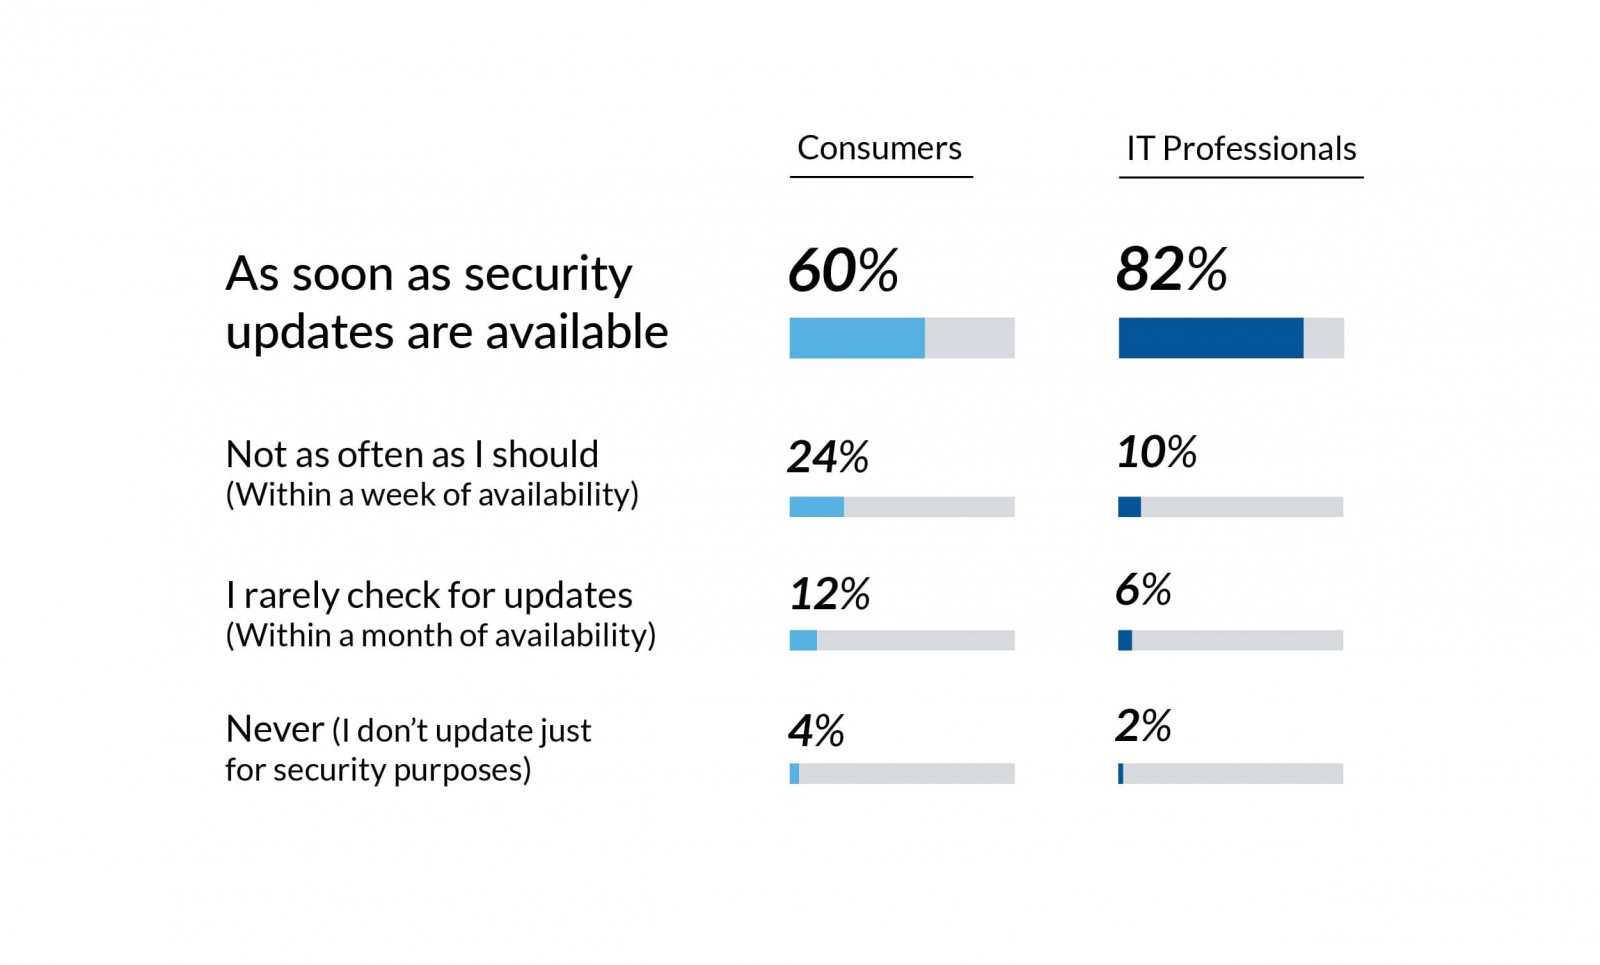 secureage report contact tracing creates tech privacy fears consumer IT professionals update mobile security